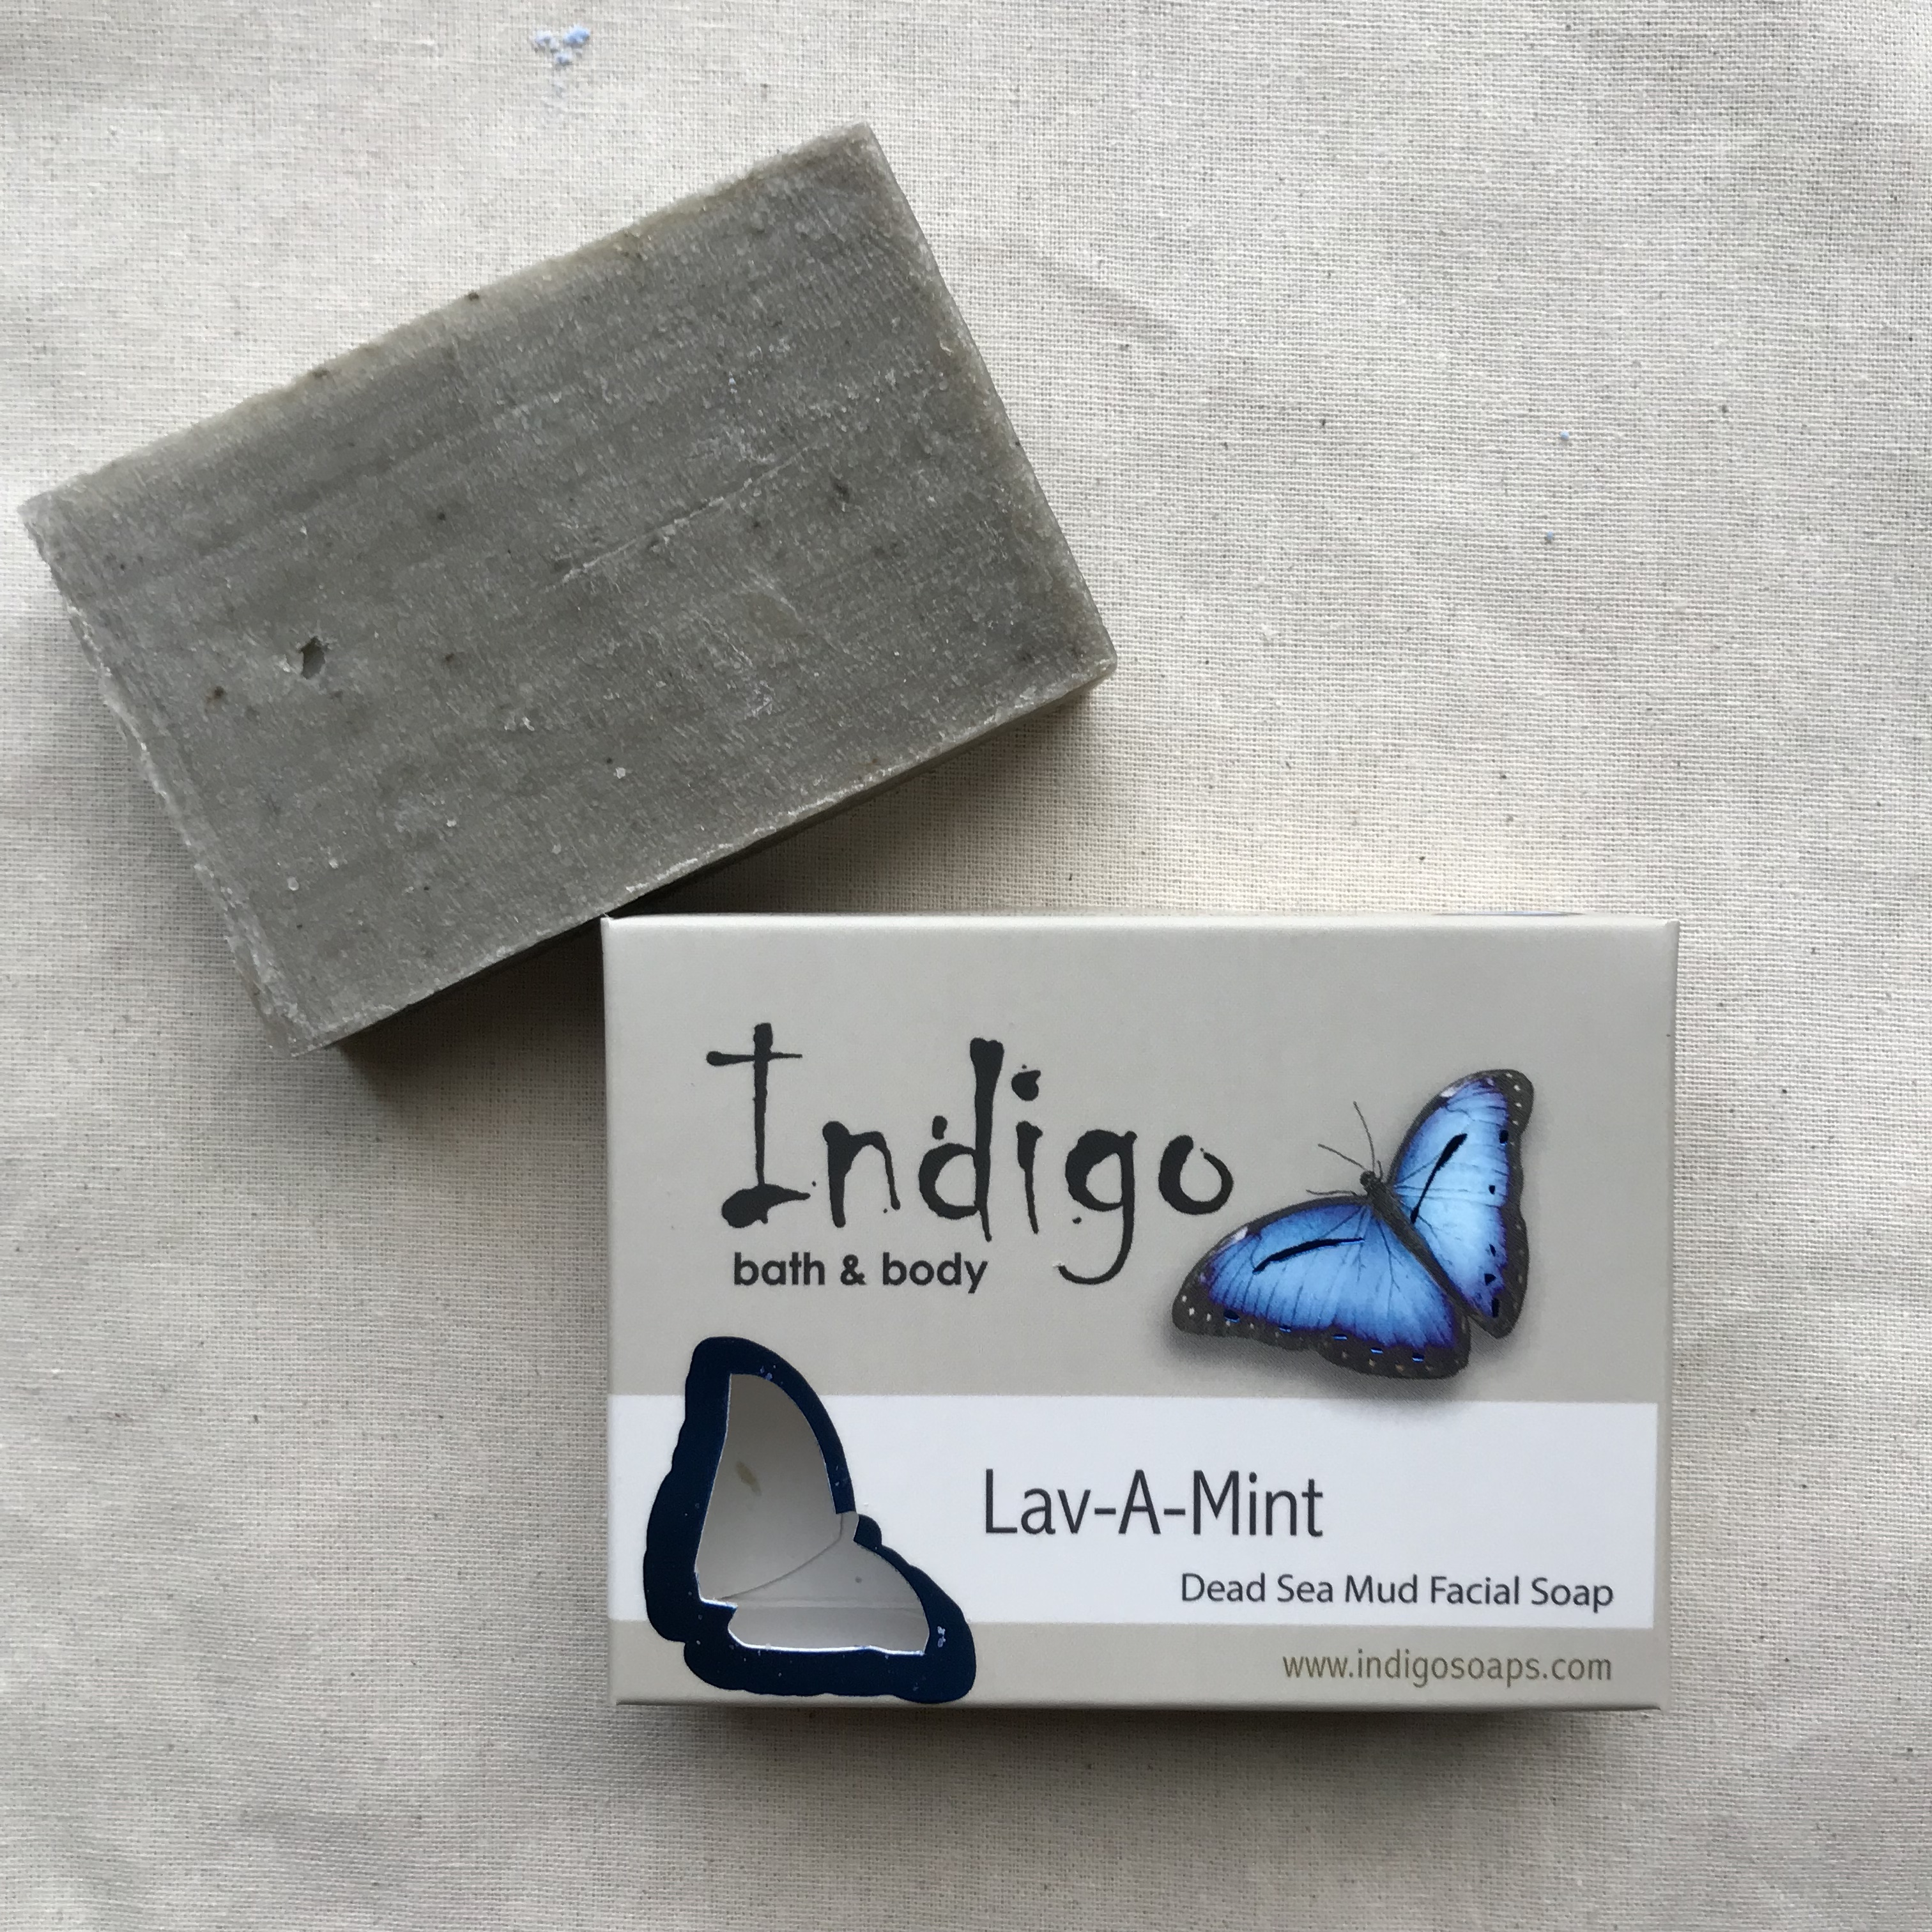 Lav-A-Mint Dead Sea Mud Facial Soap